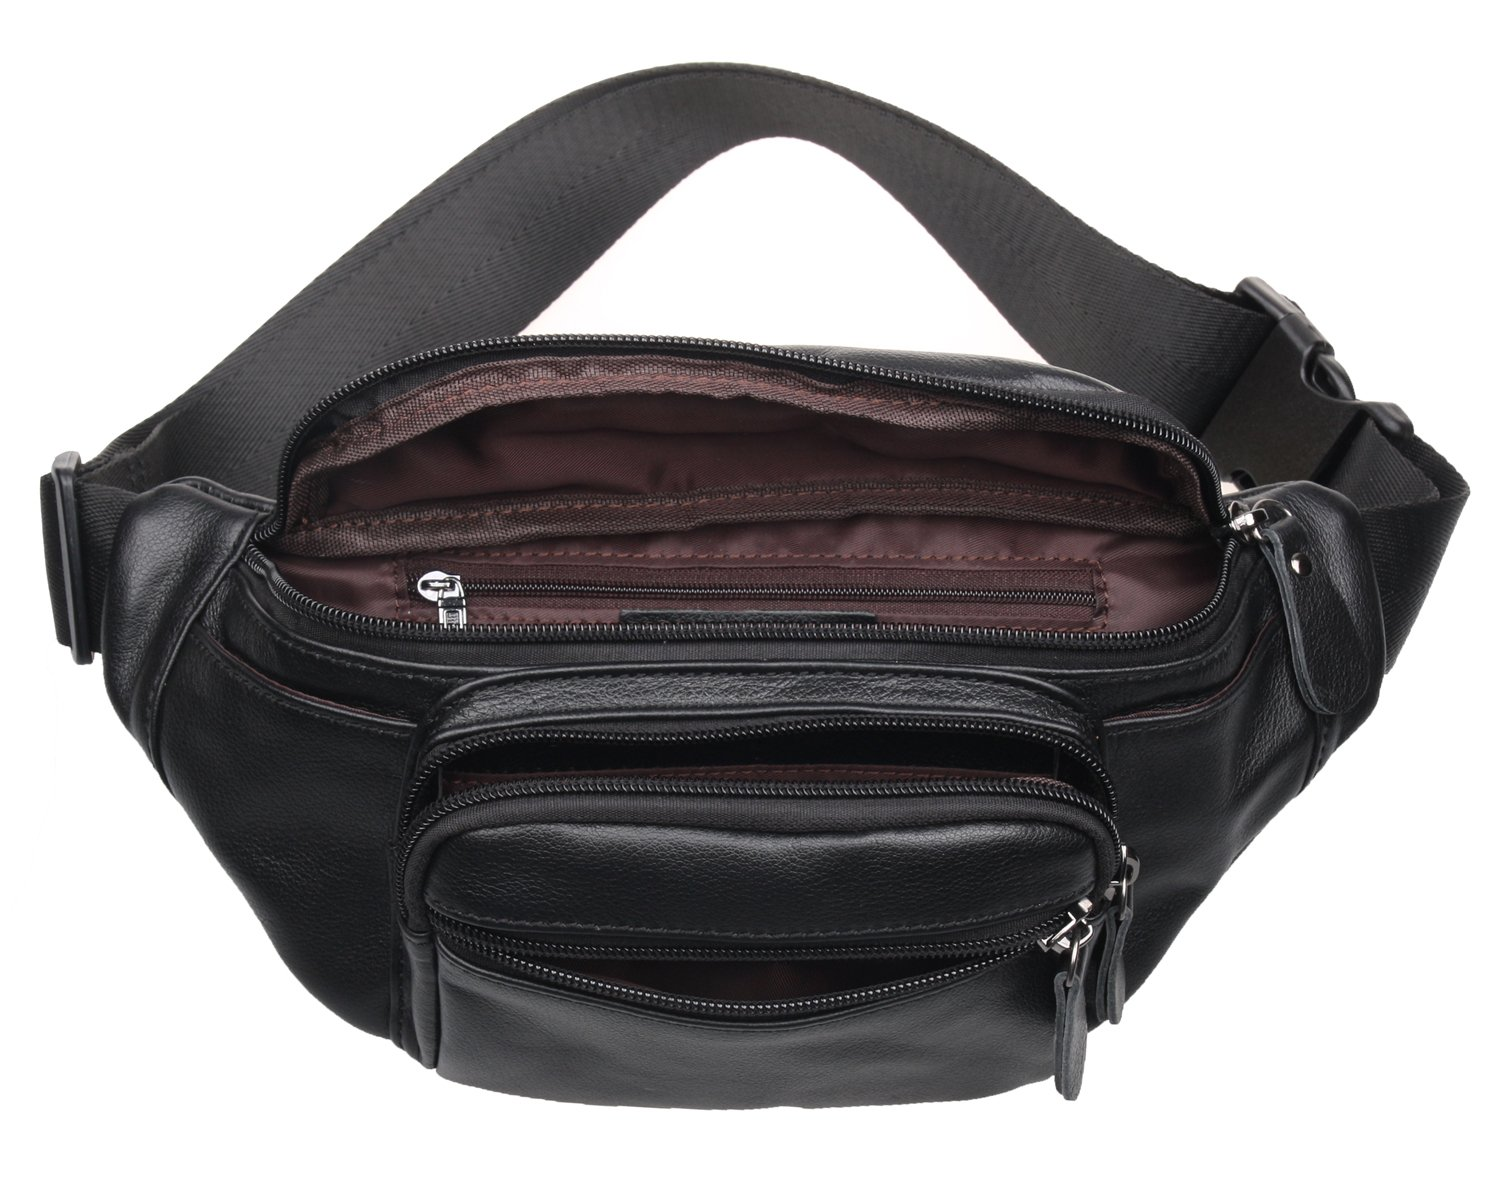 Classic Style Polare Genuine Leather Fanny Pack//Waist Bag//Organizer